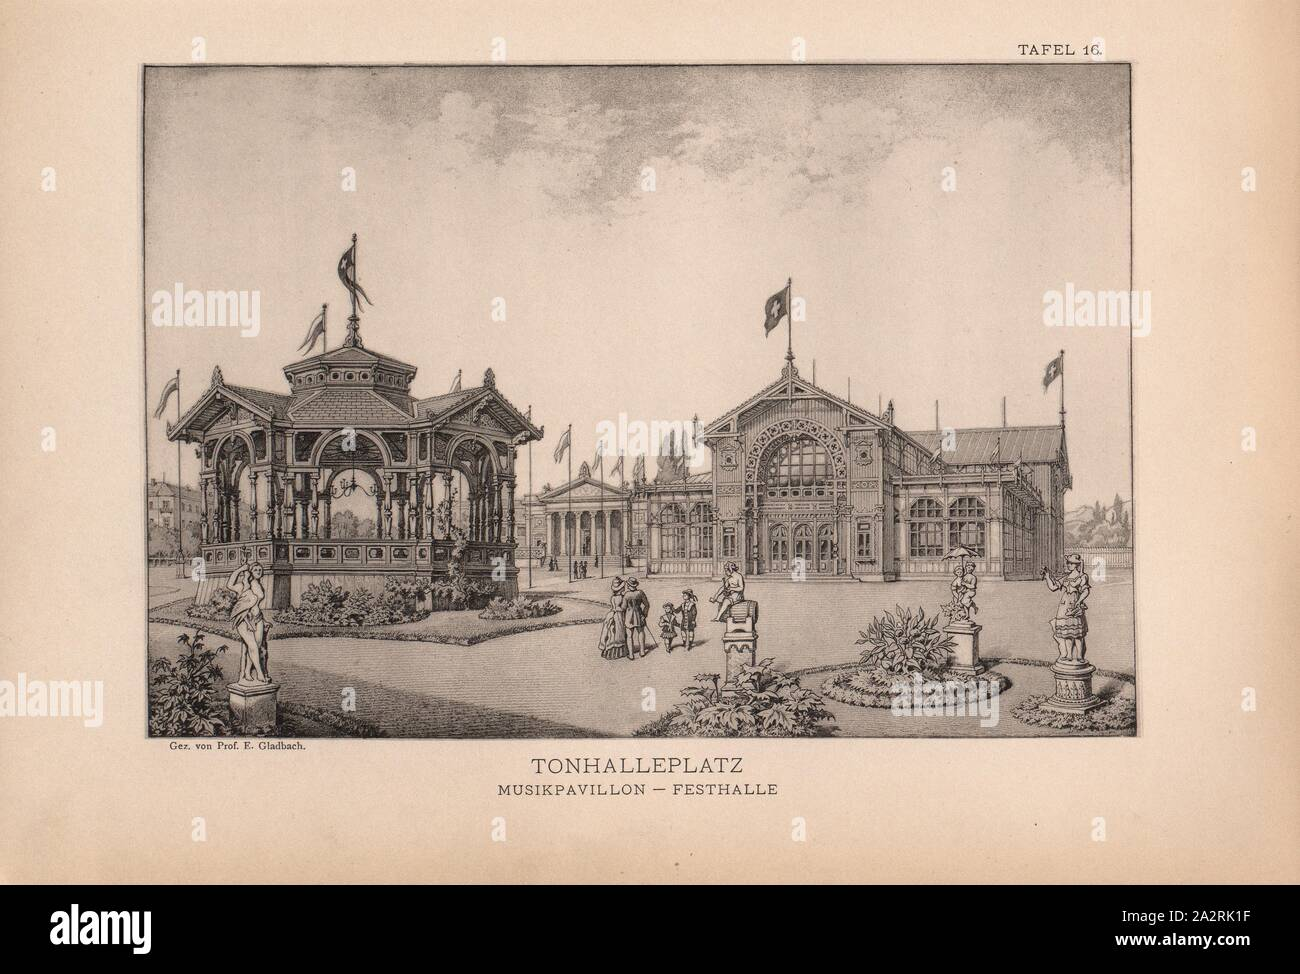 Tonhalleplatz, music pavilion - Festhalle, View of the festival hall with the music pavilion in the foreground and visitors to the state exhibition on the Tonhalleplatz, Signed: Gez., by Prof. E. Gladbach, panel 16, after p. 128, Gladbach, Ernst Georg, 1884, Bureau des Centralcomité: Bericht über die Verwaltung der Schweizerischen Landesausstellung Zürich 1883. Zürich: Orell Füssli, 1884 Stock Photo